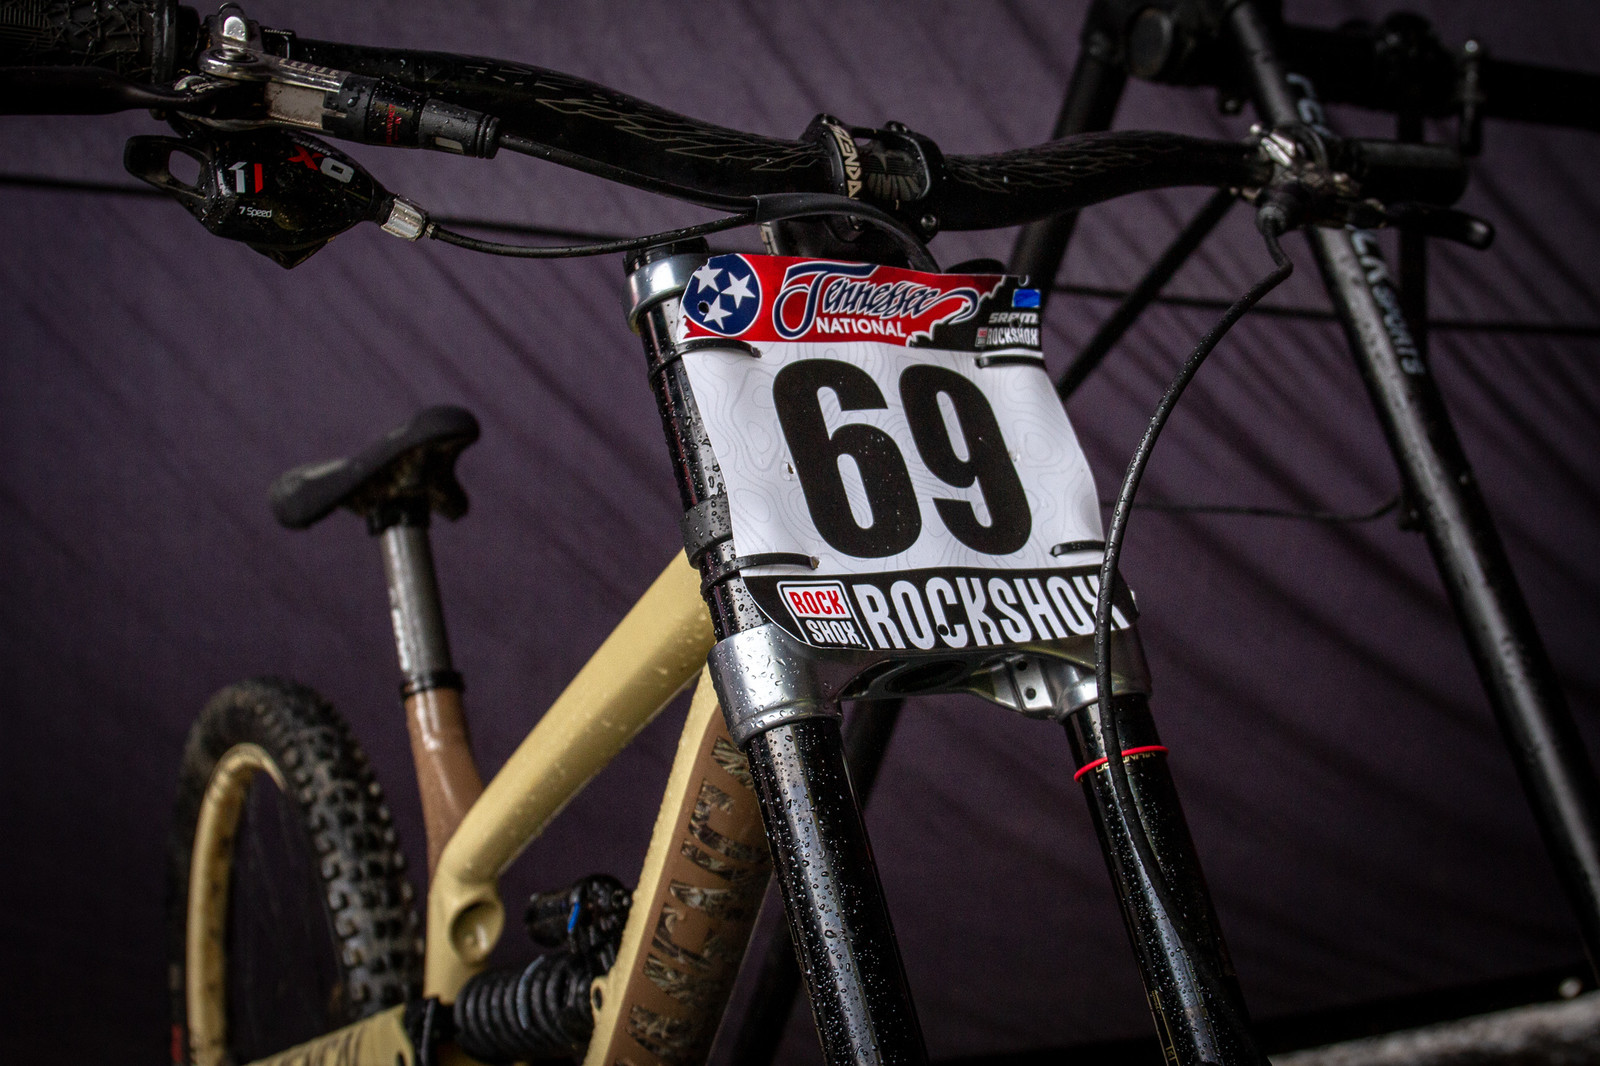 Kyle Strait's Commencal Furious with Insider Plate Number Choice - PIT BITS - 2019 Windrock Tennessee National Pro GRT  - Mountain Biking Pictures - Vital MTB